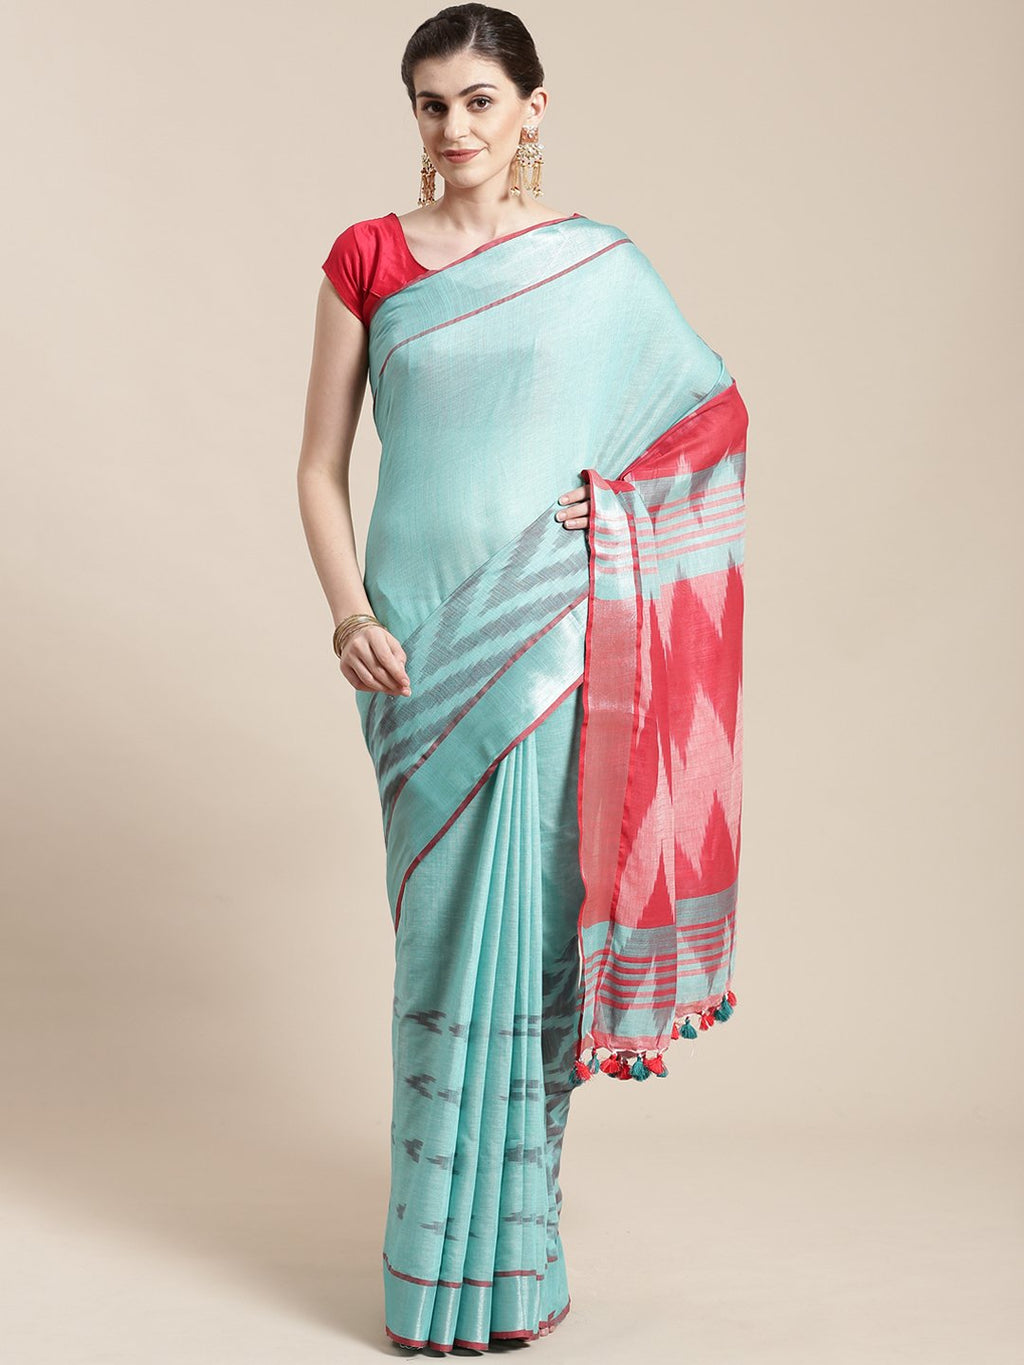 Linen Handwoven Saree and Blouse-Saree-Kalakari India-ALBGSA0035-Hand Woven, Linen, Sarees, Sustainable Fabrics, Traditional Weave-[Linen,Ethnic,wear,Fashionista,Handloom,Handicraft,Indigo,blockprint,block,print,Cotton,Chanderi,Blue, latest,classy,party,bollywood,trendy,summer,style,traditional,formal,elegant,unique,style,hand,block,print, dabu,booti,gift,present,glamorous,affordable,collectible,Sari,Saree,printed, holi, Diwali, birthday, anniversary, sustainable, organic, scarf, online, low pri